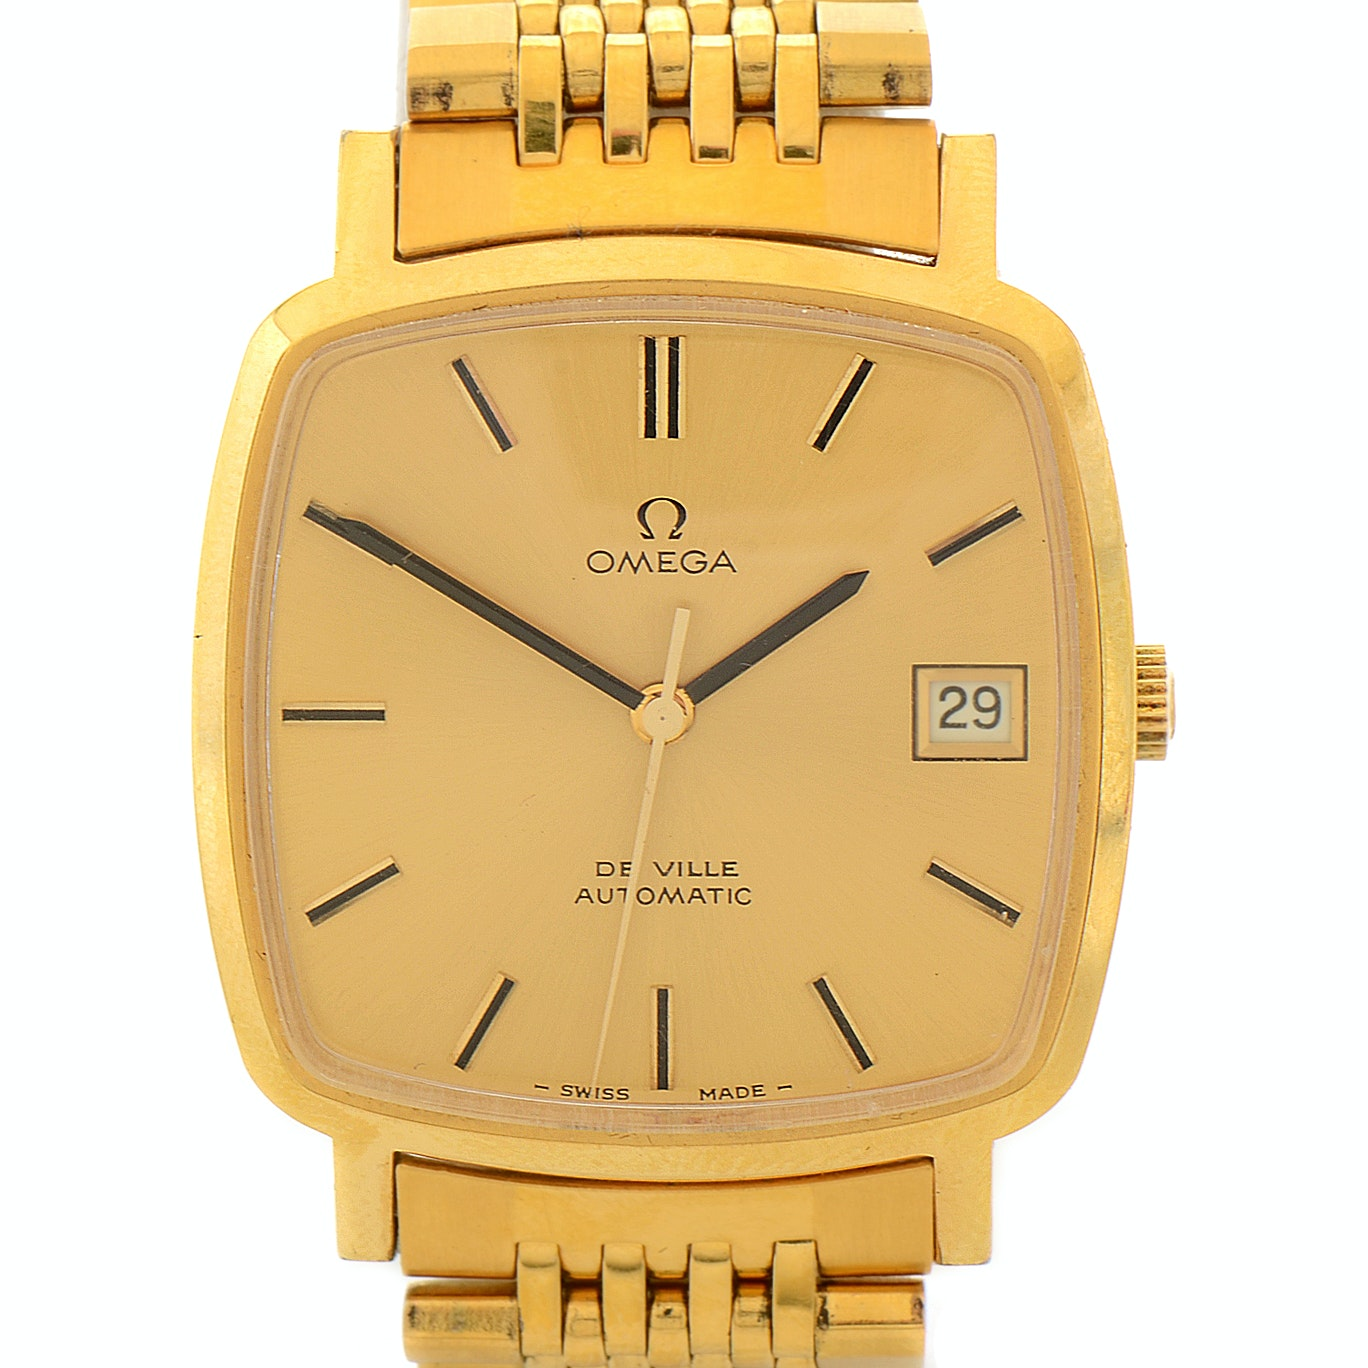 Omega De Ville Automatic Gold-Plated Stainless Steel Wristwatch